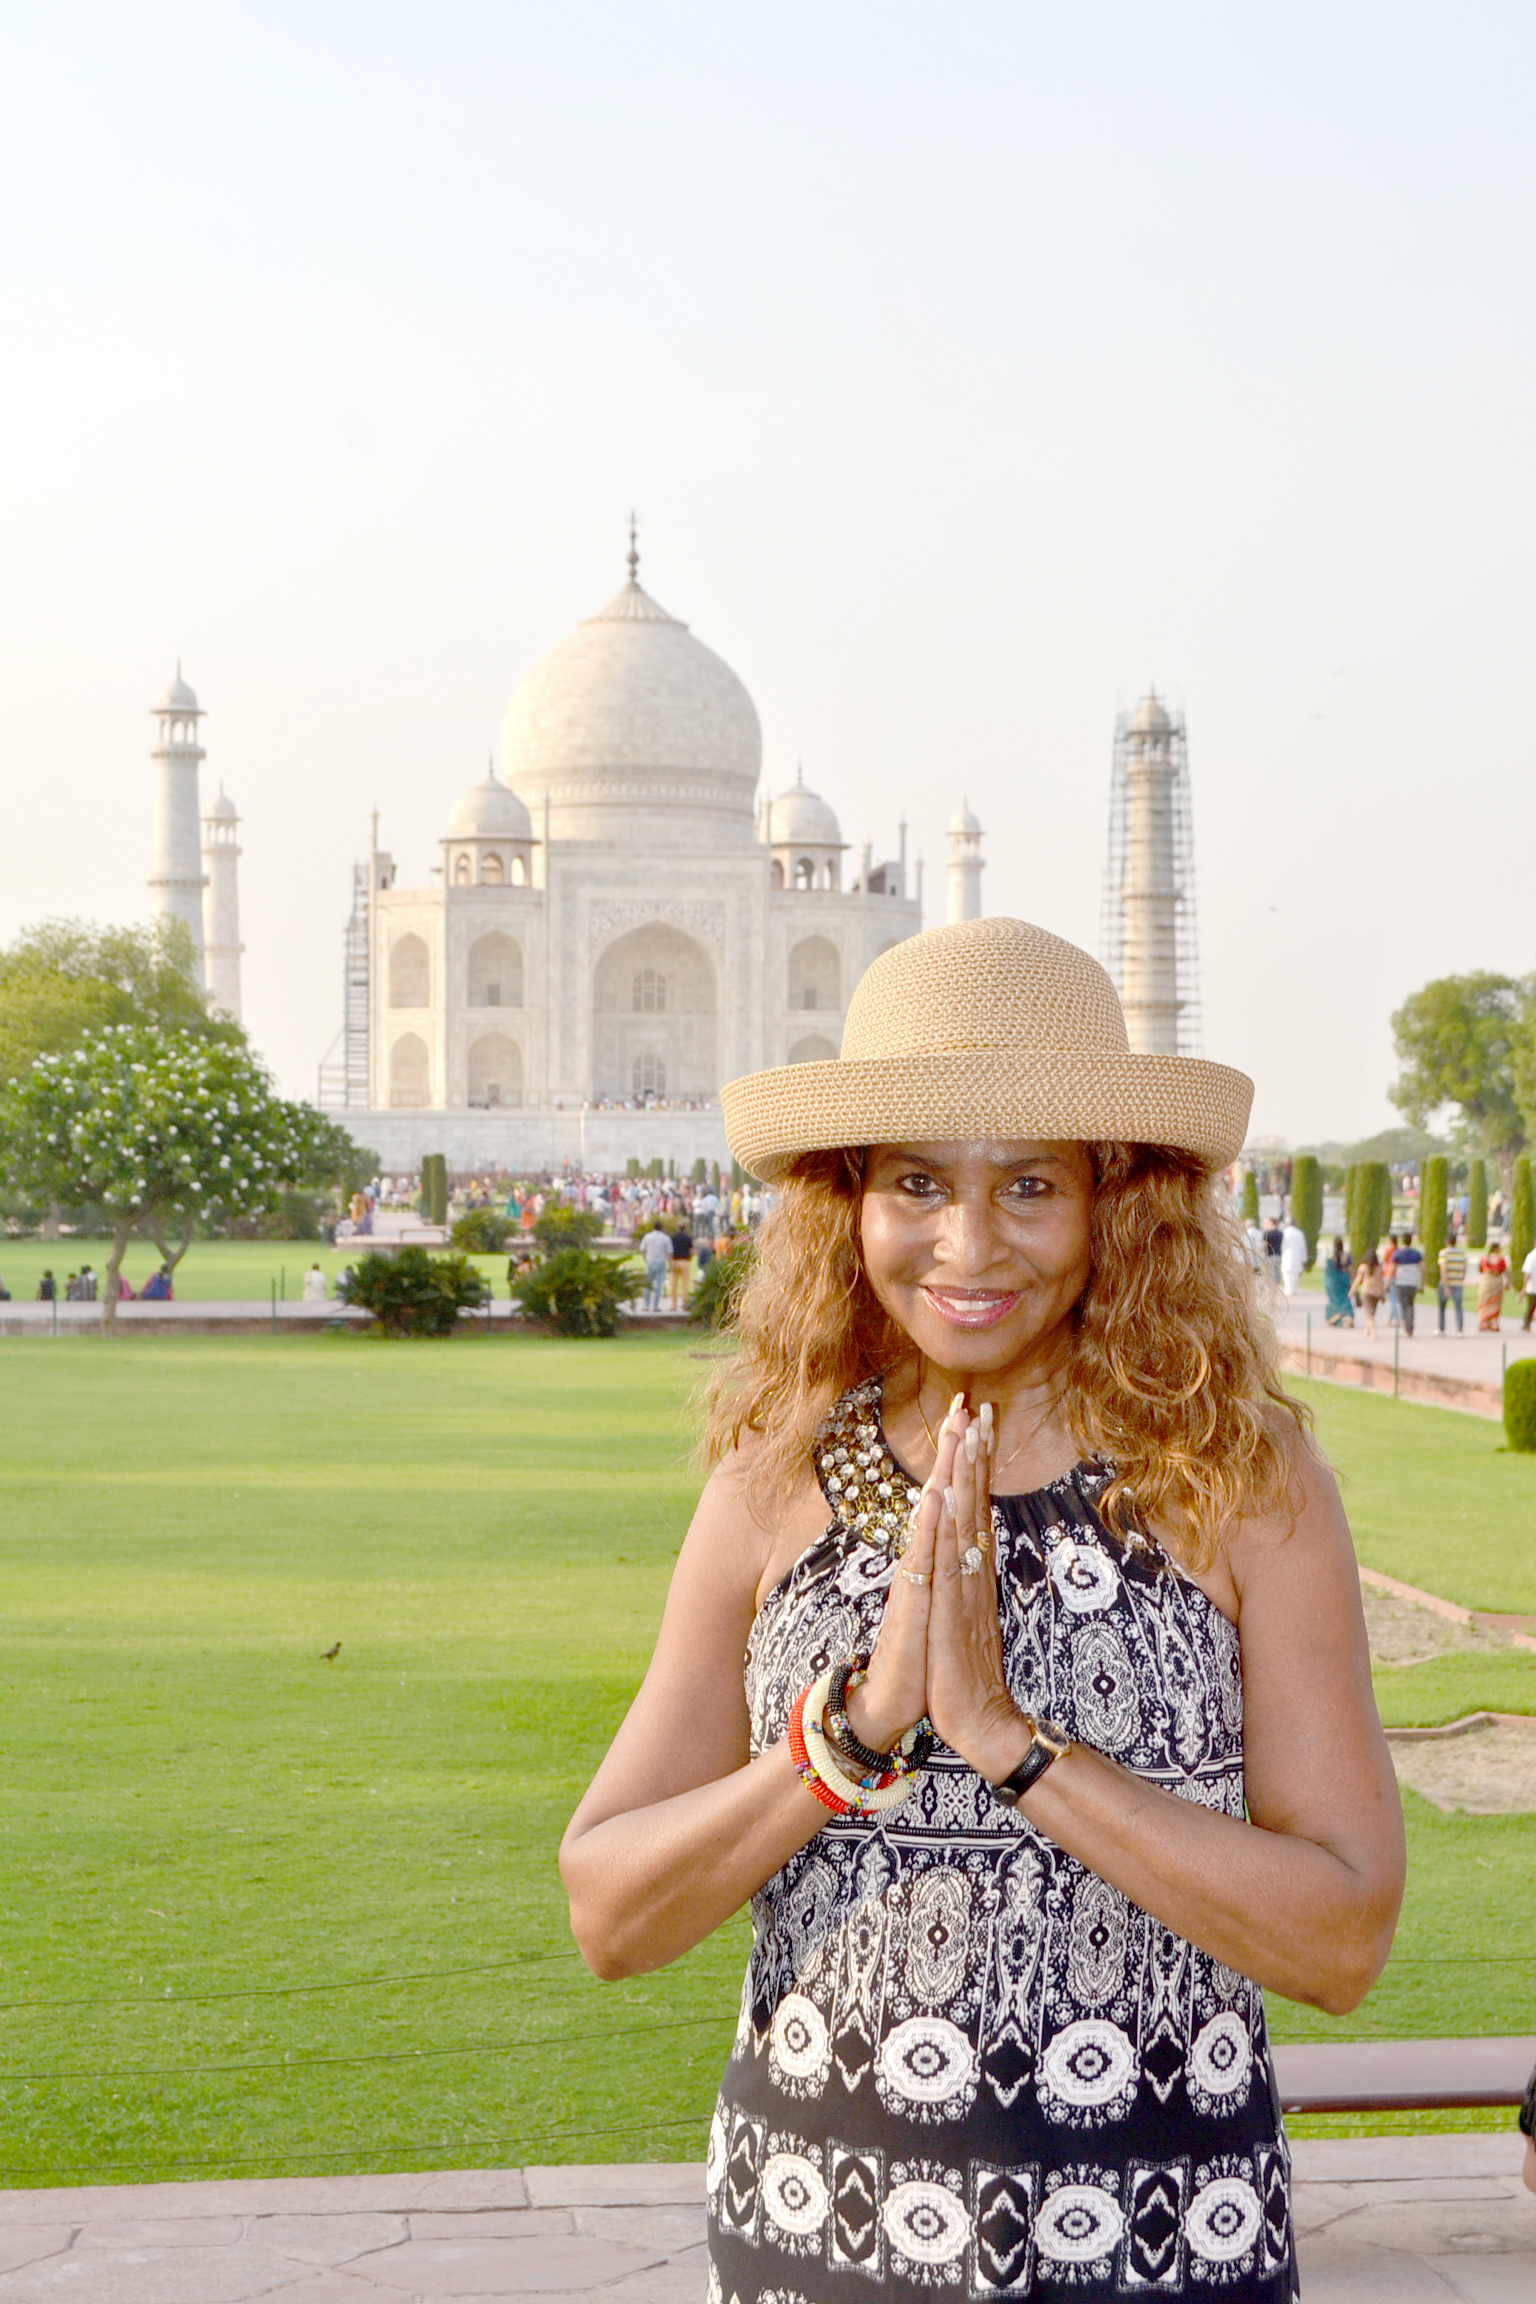 Toni at the Taj Mahal